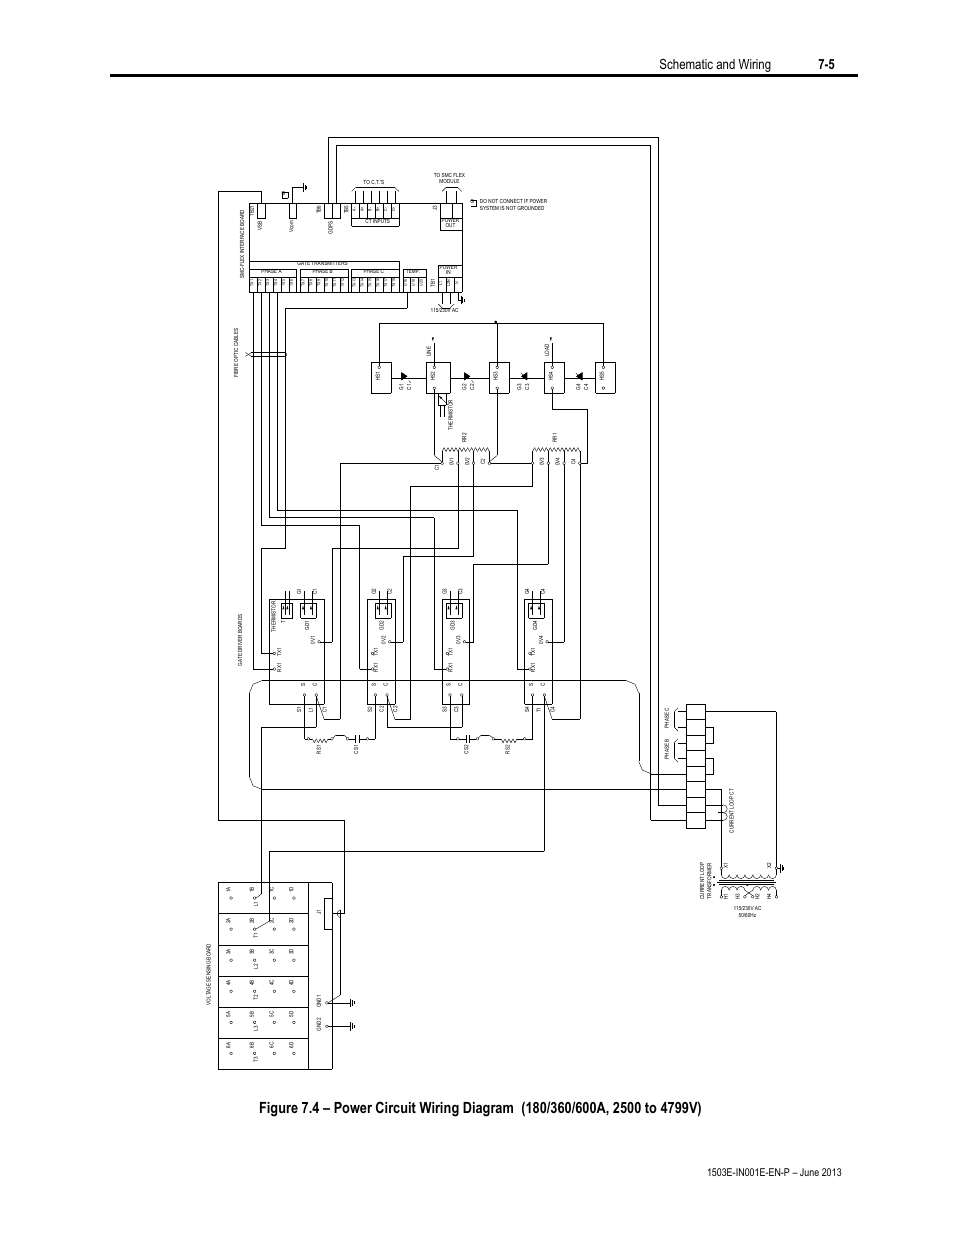 Smc Dc42 Wiring Diagram Model - Wiring Diagrams Lol Unipoint Alt Wiring Diagram on